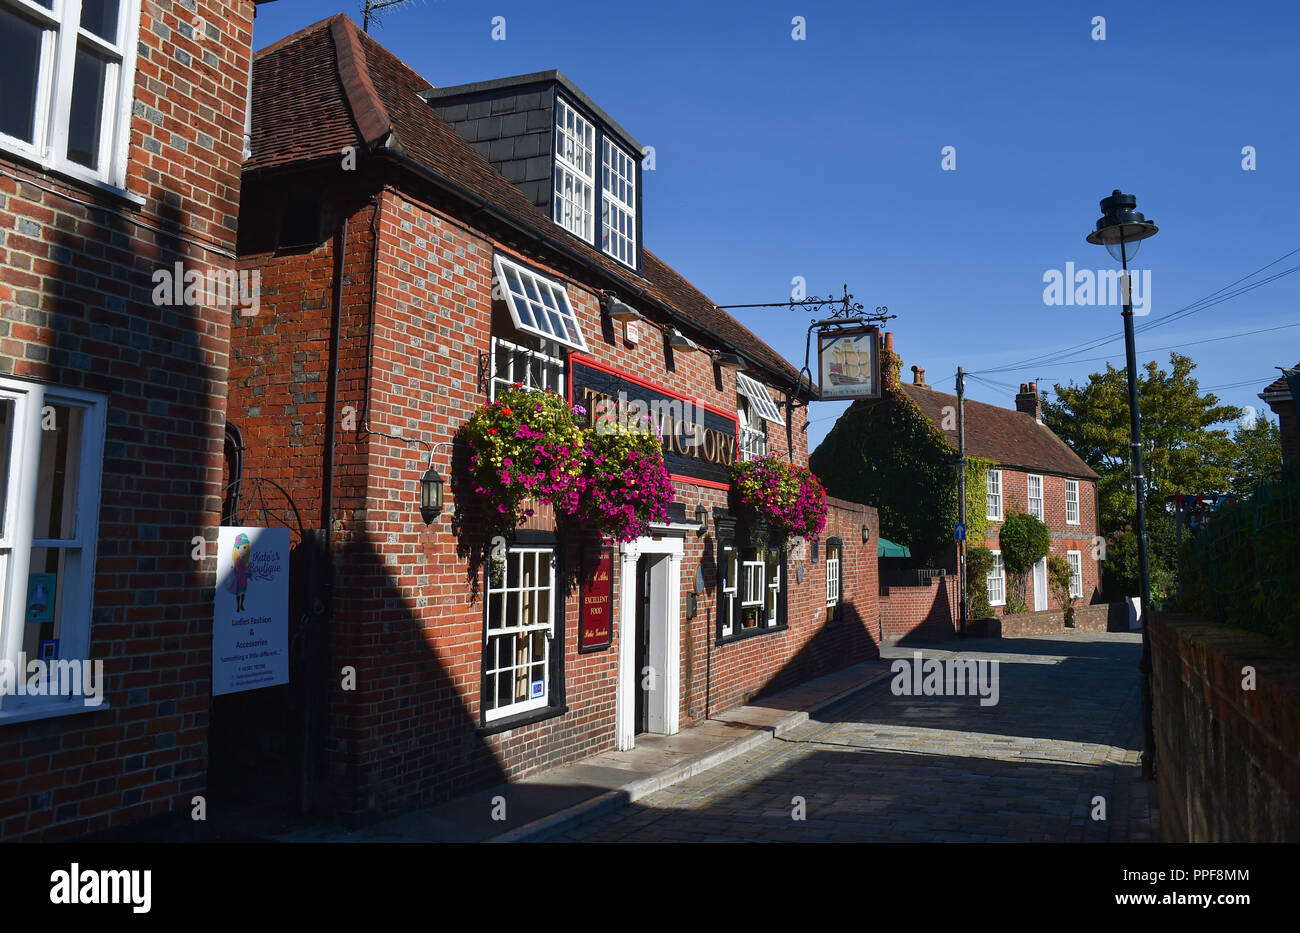 The Victory Inn pub in  picturesque quaint village of Hamble le Rice on the River Hamble near Southampton in Hampshire - Stock Image